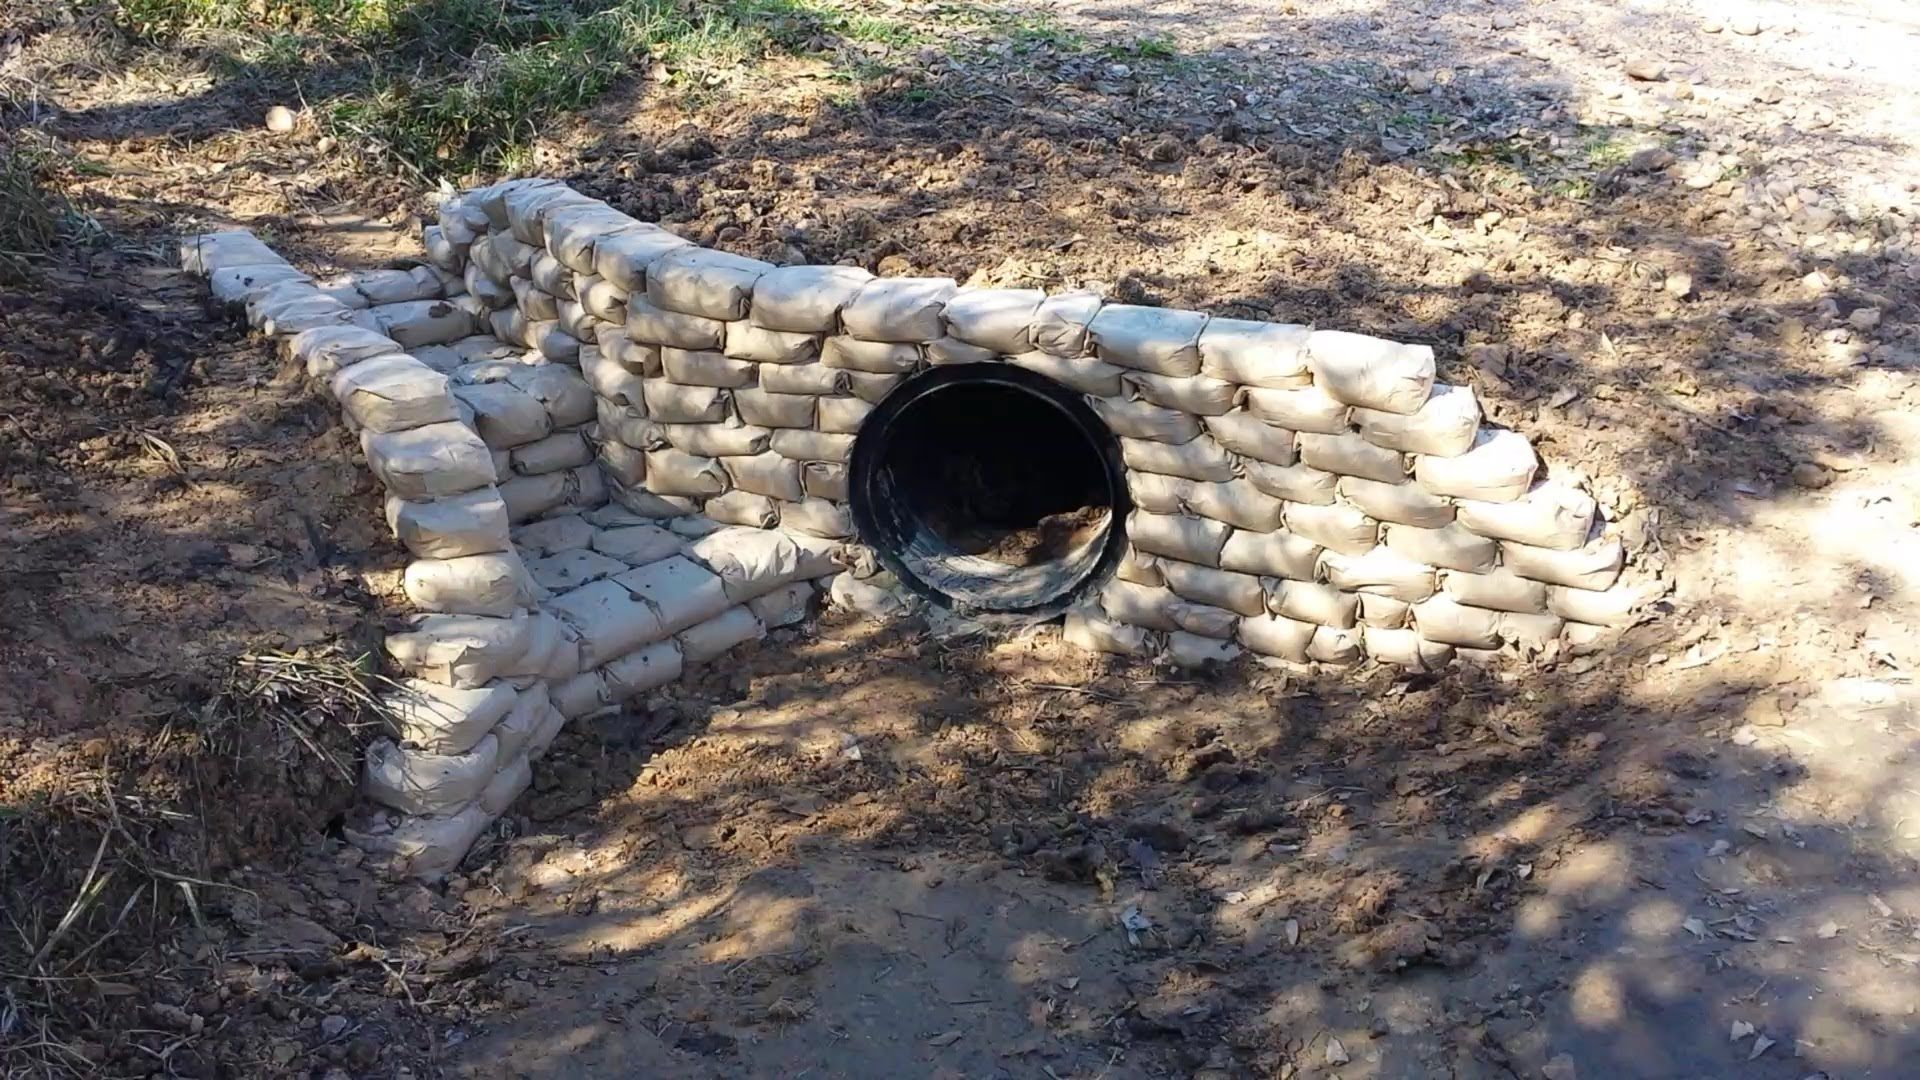 Building A Cement Bag Retaining Wall Around A Culvert By Pouring Dry Concrete Mix In Small Lunch Bags And Concrete Retaining Walls Concrete Bags Retaining Wall